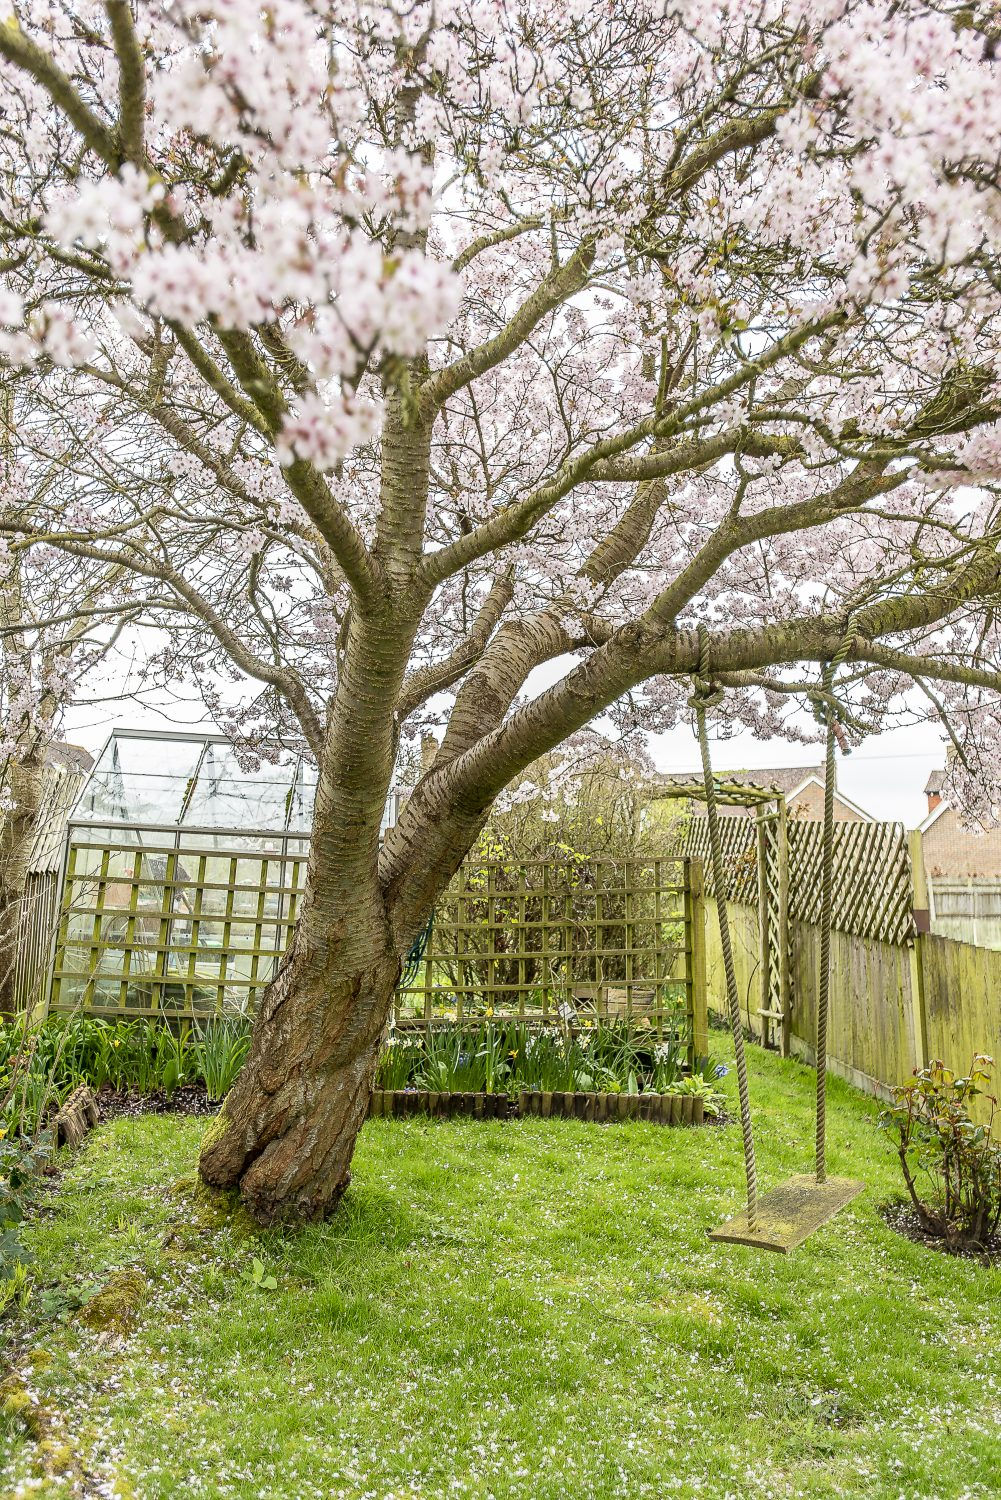 The pale pink conveniently continues outside with the beautiful blossom of a mature cherry tree